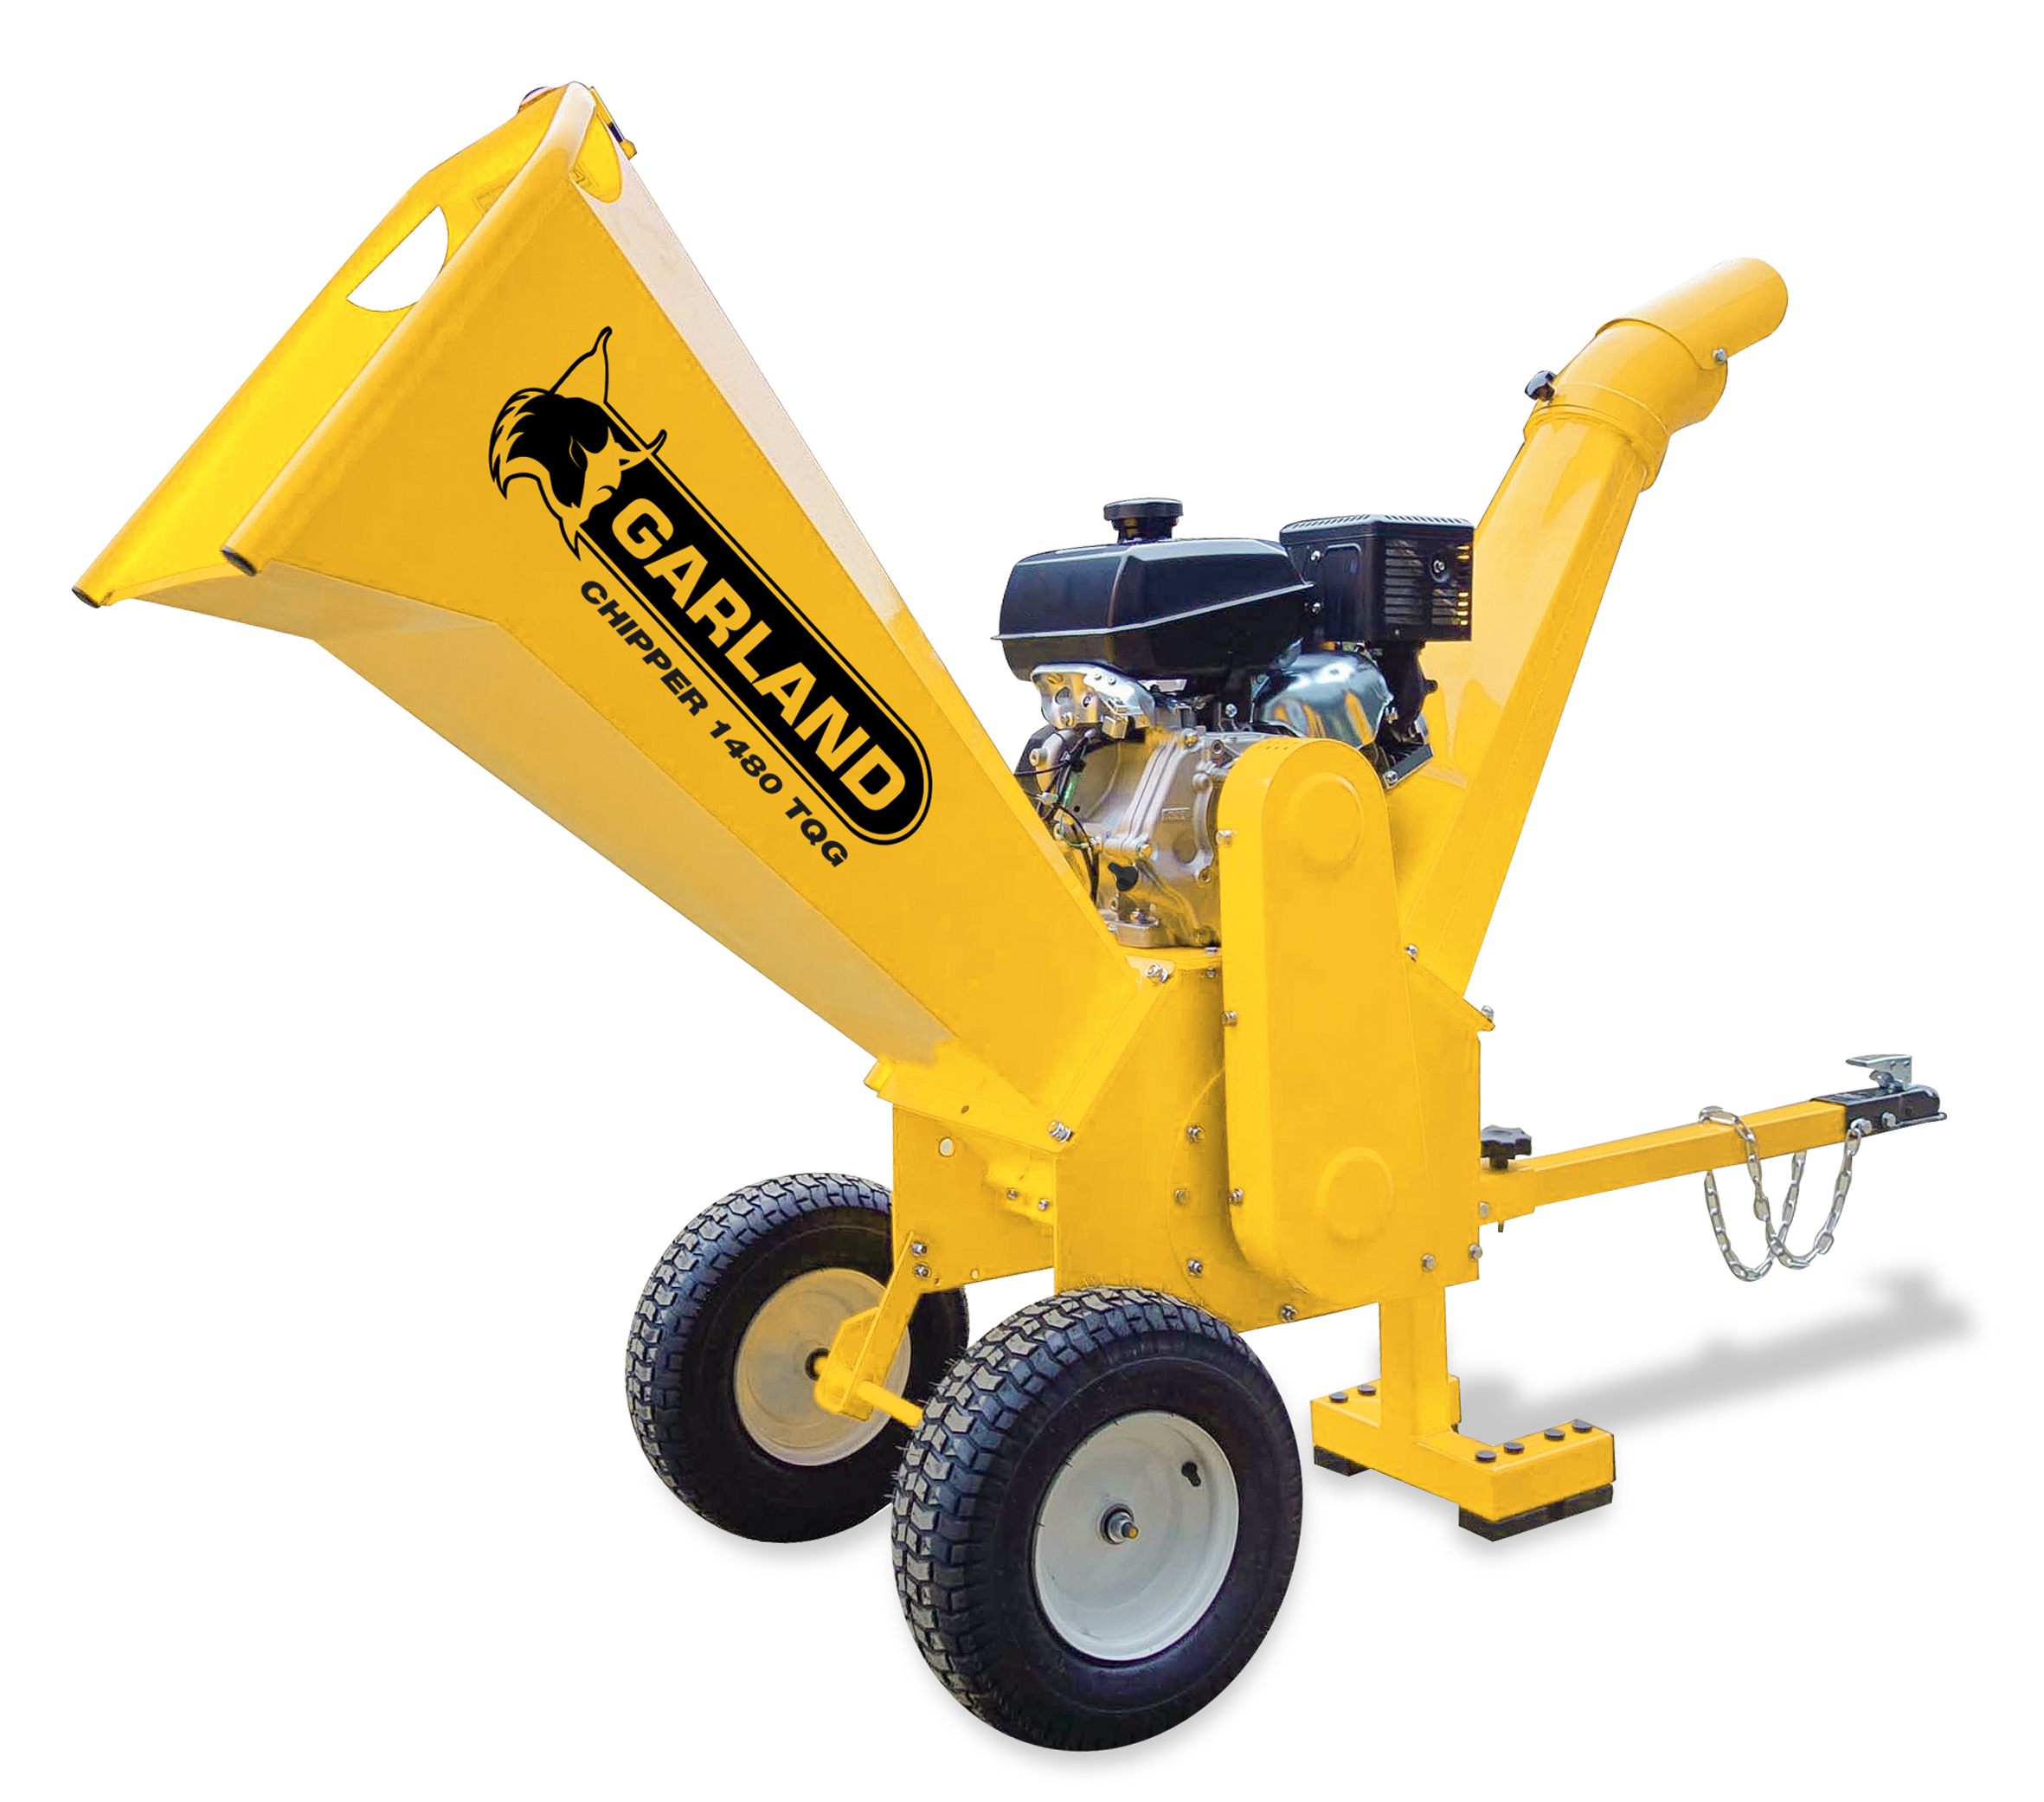 Biotrituradores - CHIPPER 1480 TQG-V19